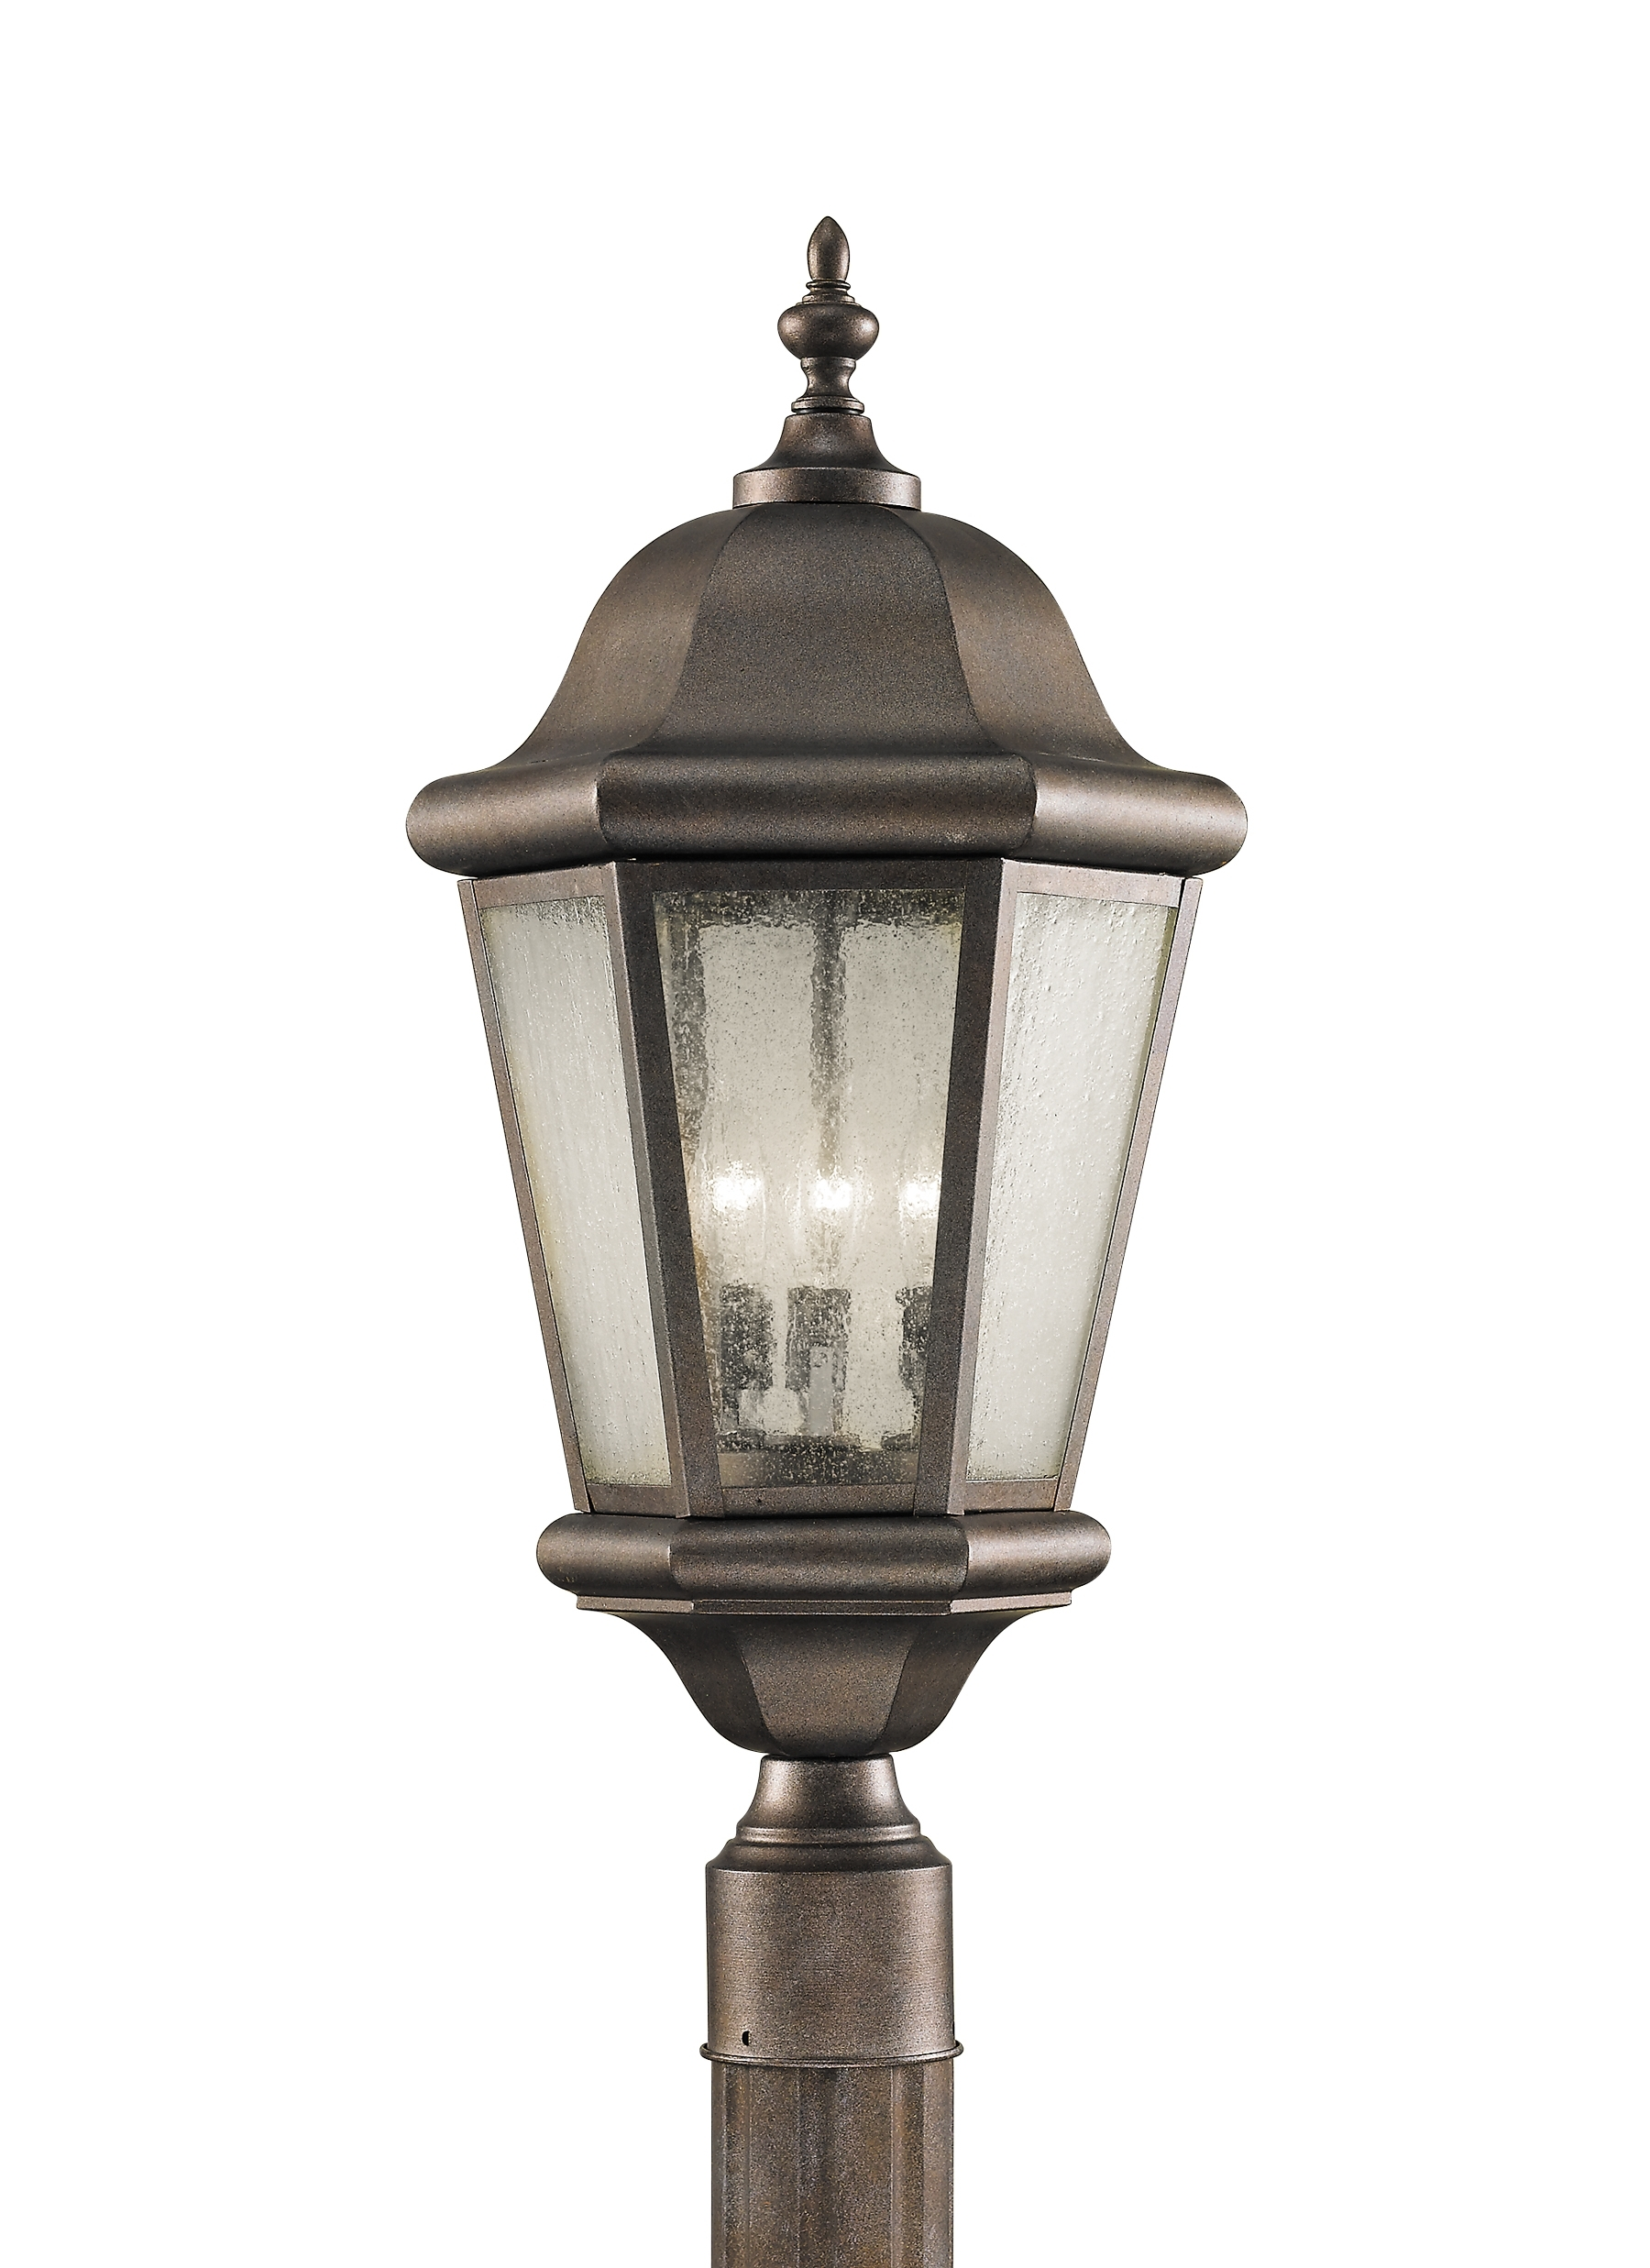 Ol5907cb,3 – Light Post,corinthian Bronze Pertaining To Most Recently Released Outdoor Hanging Post Lights (View 6 of 20)